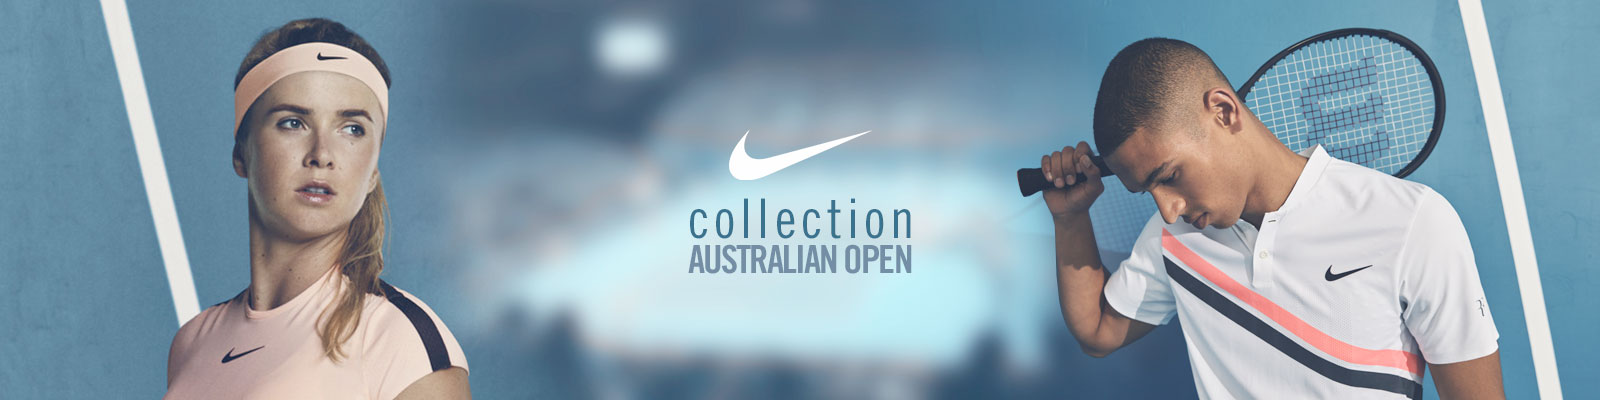 Nike Australian Open Collection 2018